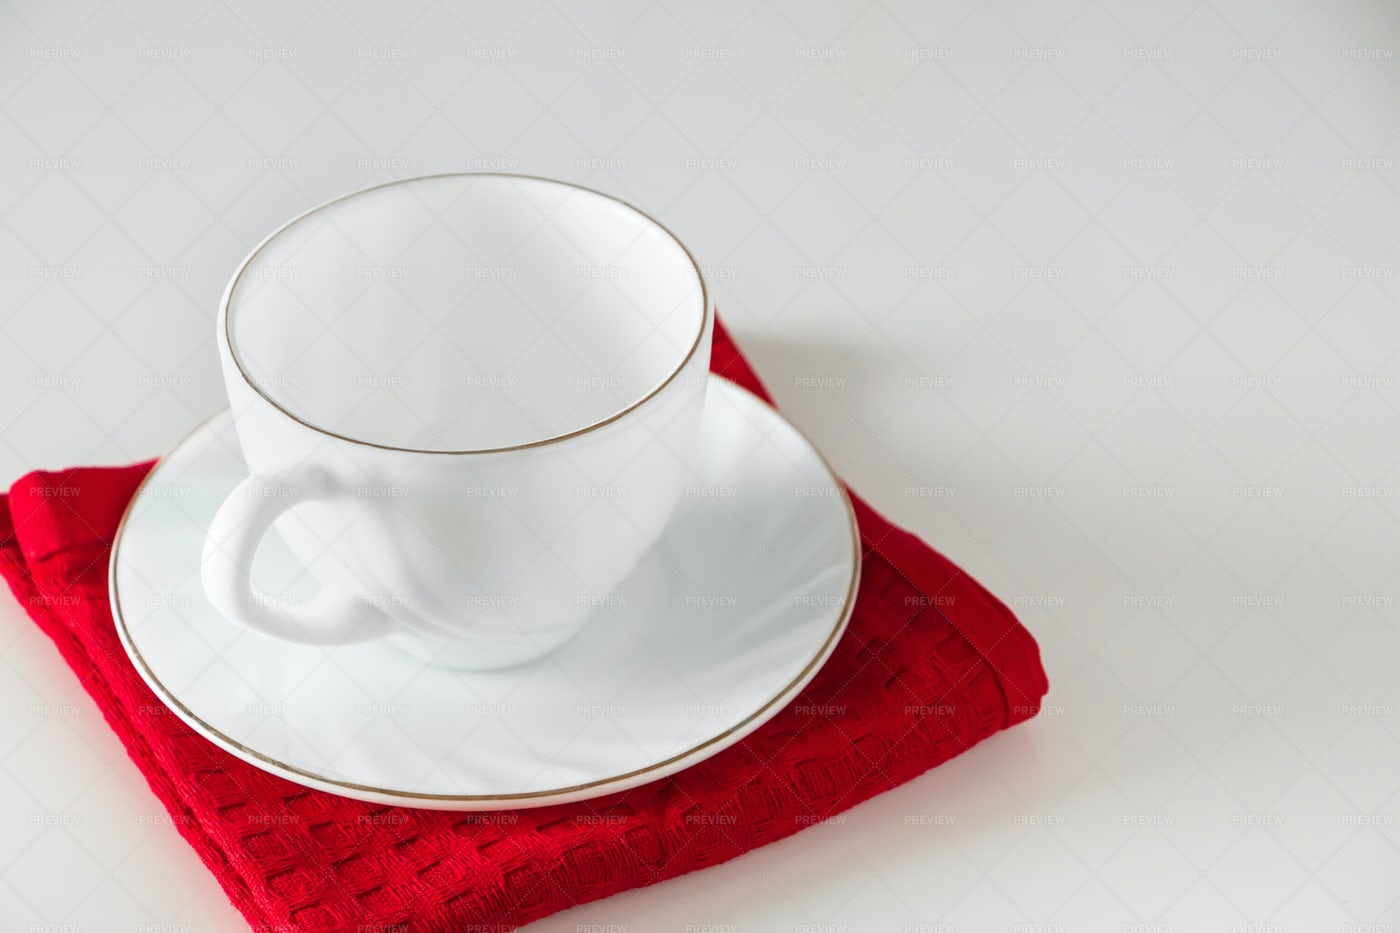 White Cup For Coffee: Stock Photos